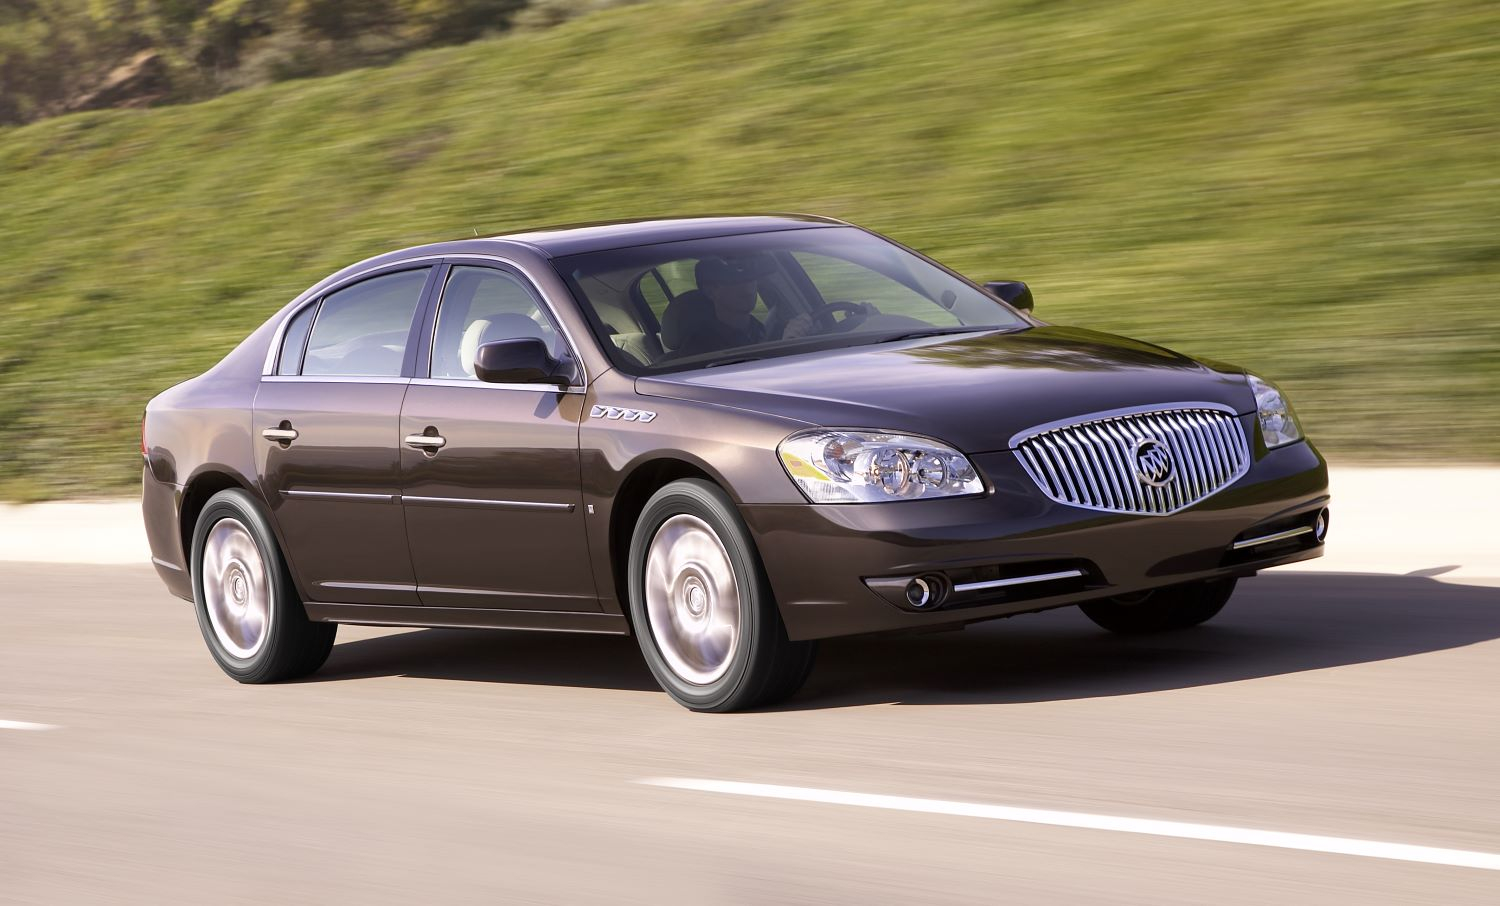 2006 Buick Lucerne Prone To Engine Problems | Gm Authority New 2022 Buick Enclave Oil Capacity, Owner's Manual, Problems